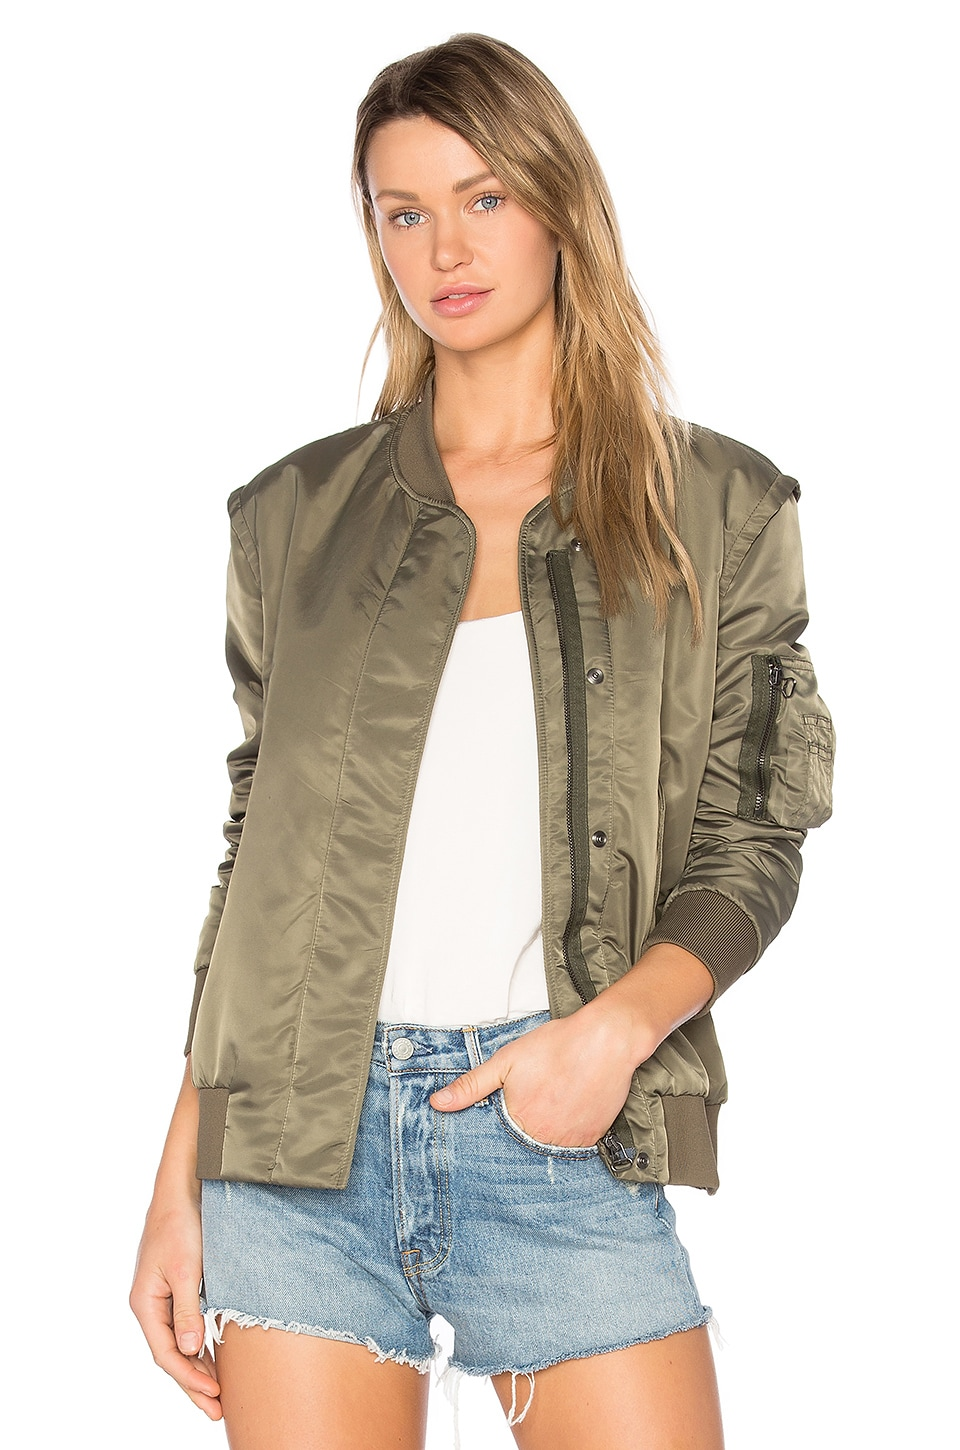 Sunset Bomber Jacket by Golden Goose